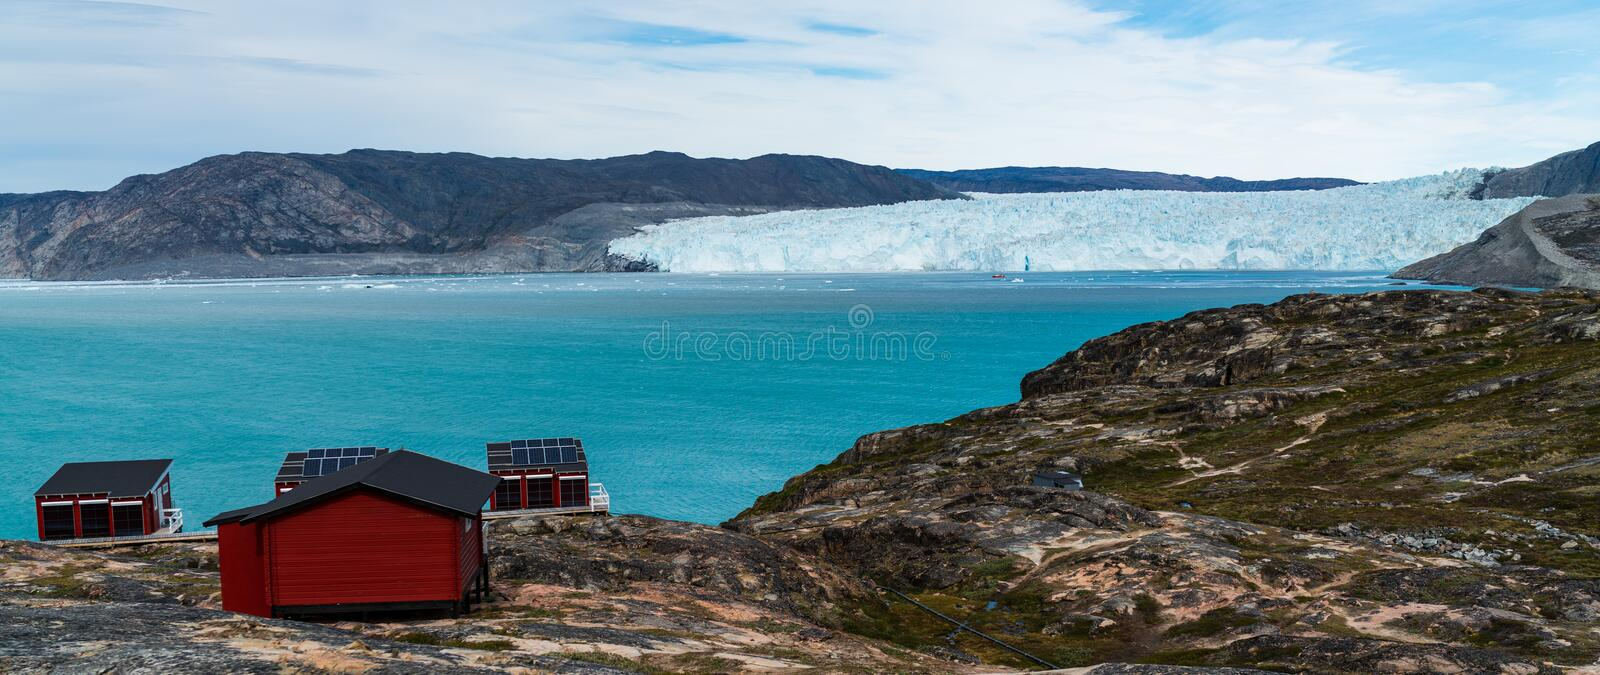 Greenland glacier nature landscape with famous Eqi glacier and lodge cabins. Tourist destination Eqi glacier in West Greenland AKA Ilulissat and Jakobshavn stock photography